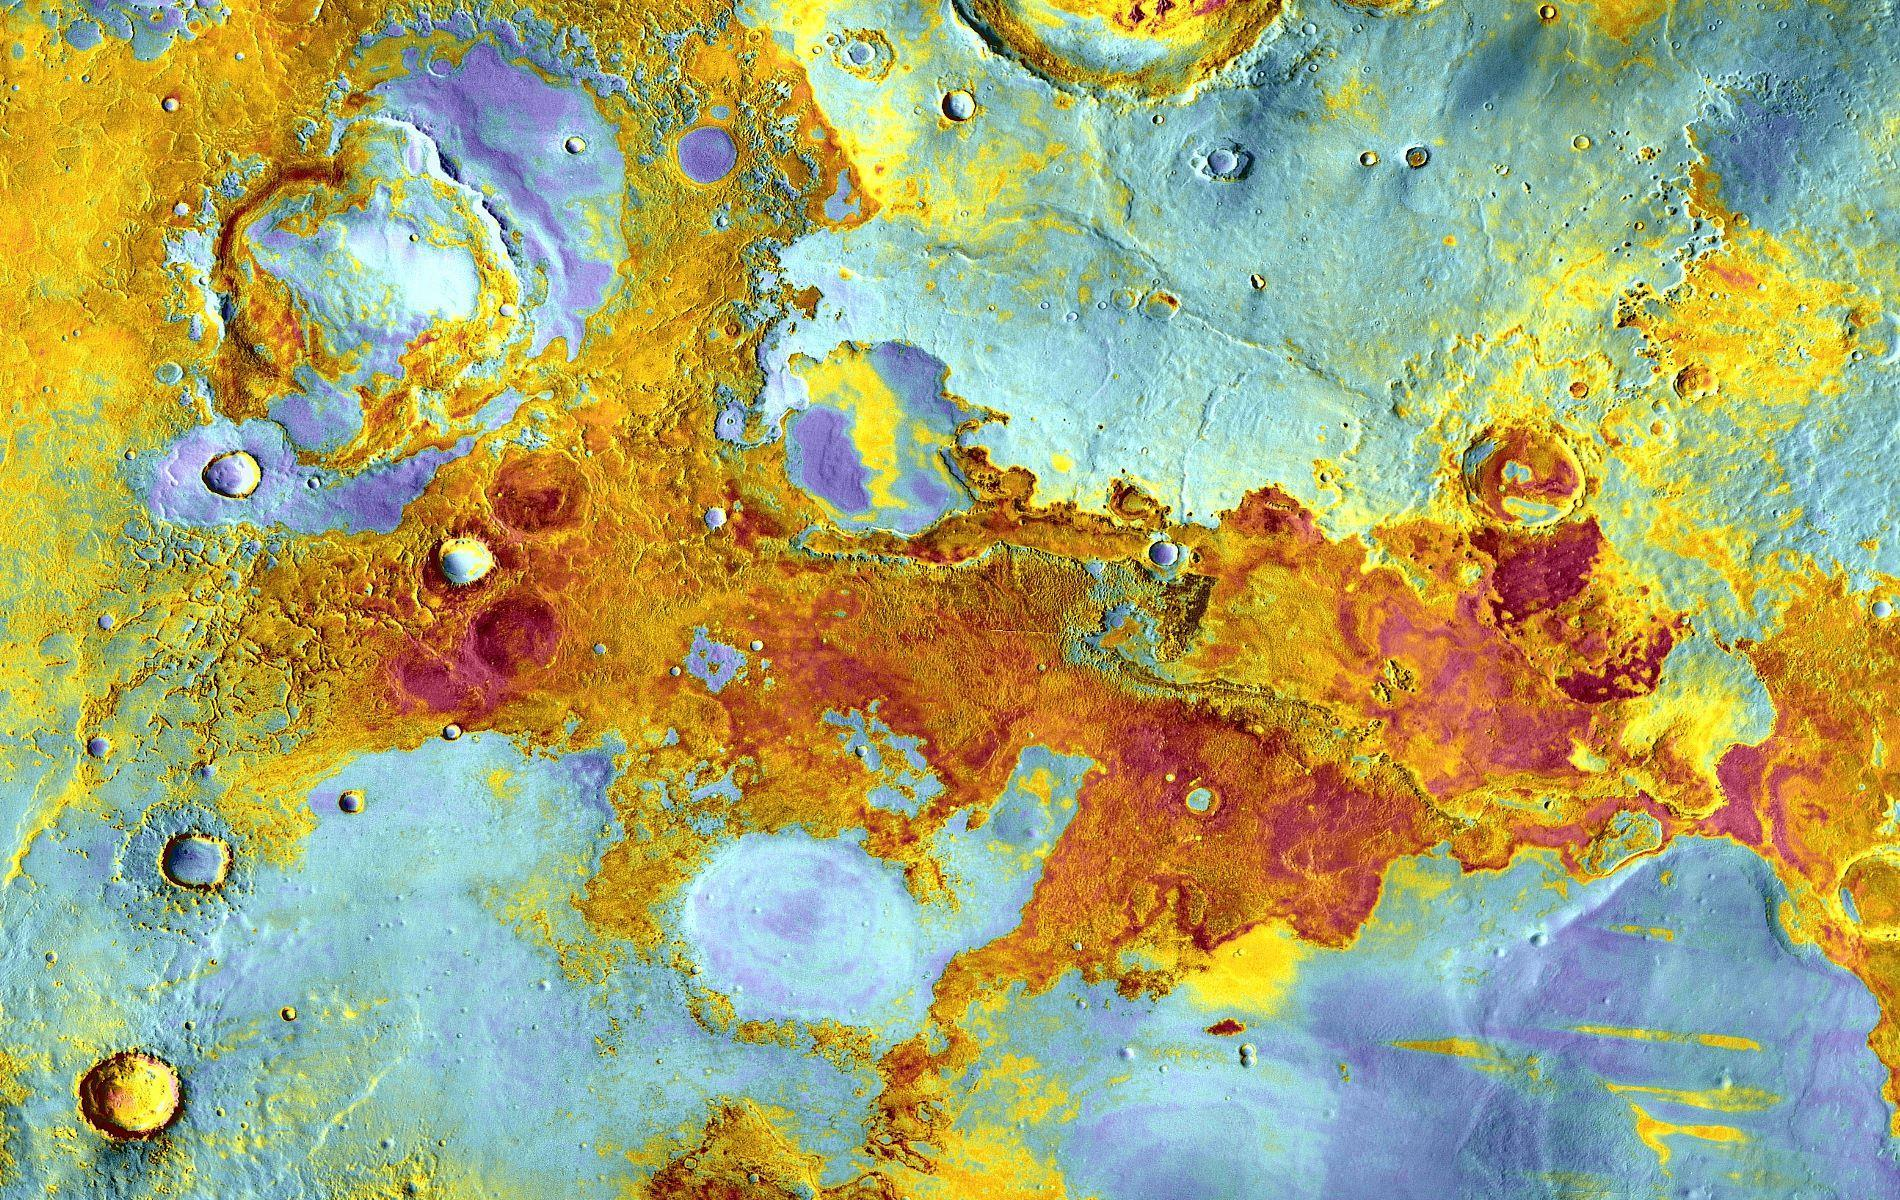 Mars_images-satellite_Meridiani_Planum_photos-by-NASA-and-ESA_best-selection-photography